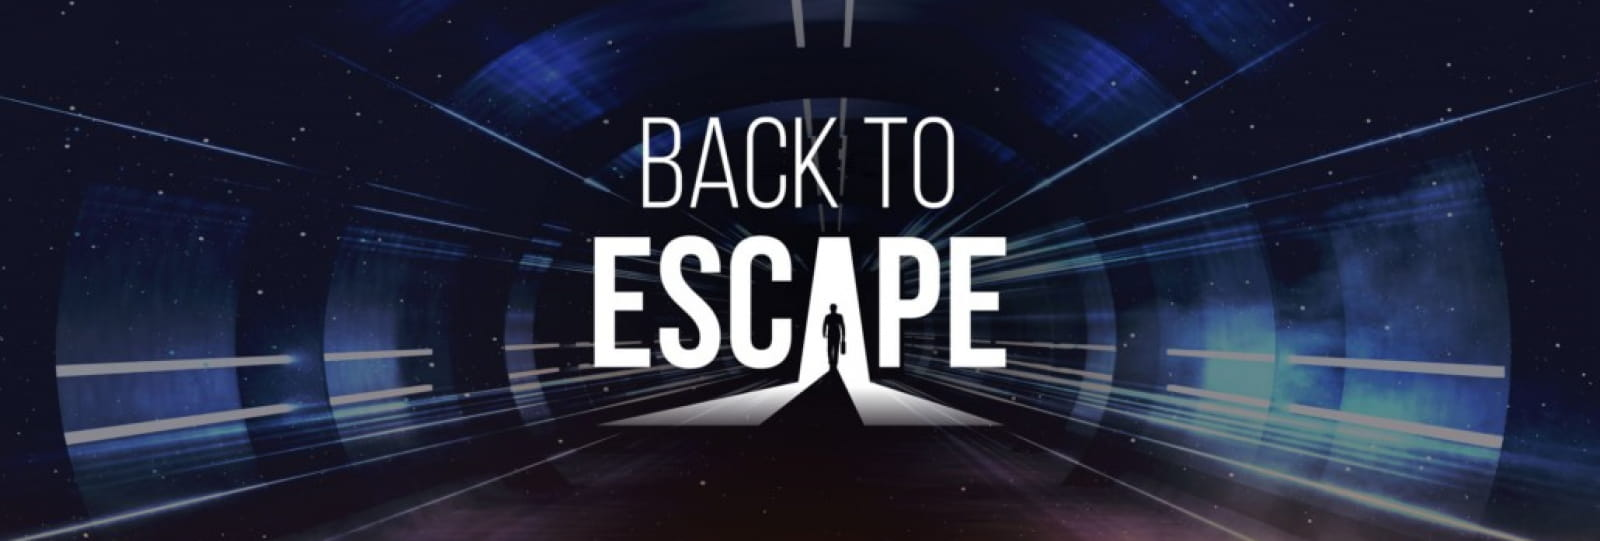 Back to Escape